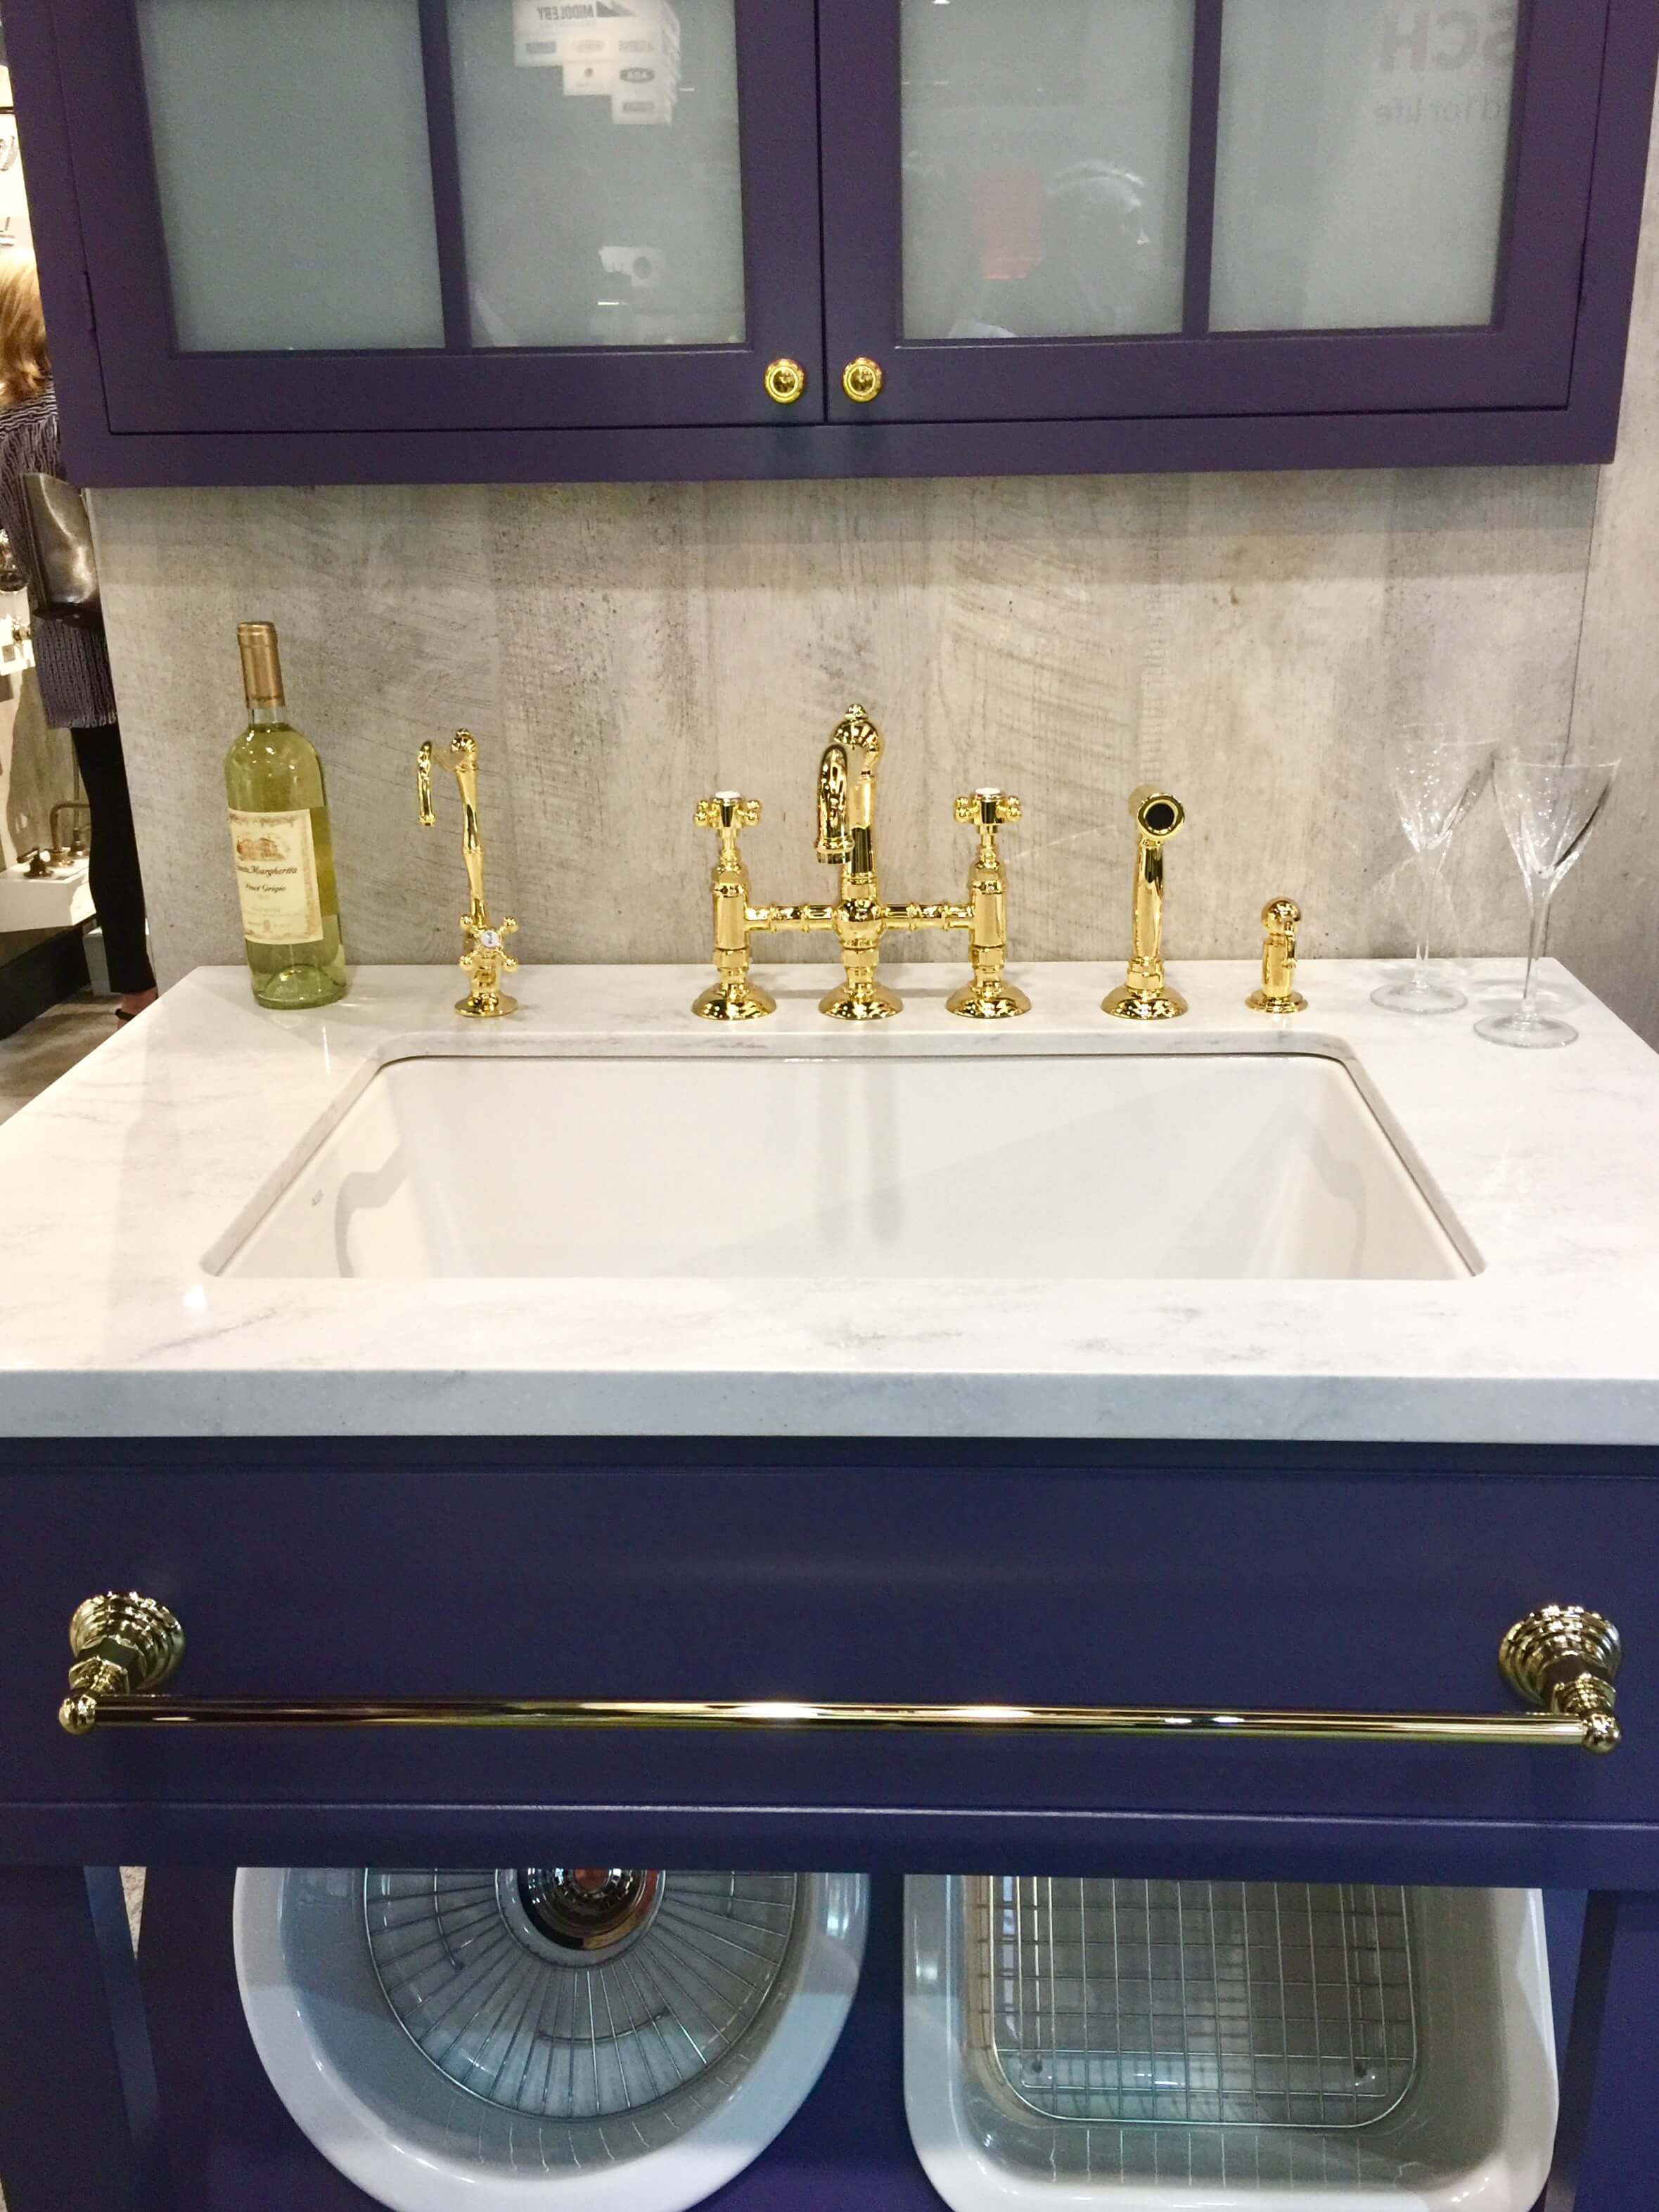 kohler undermount kitchen sink curtain for window and bath trends at kbis 2017 - color finishes ...